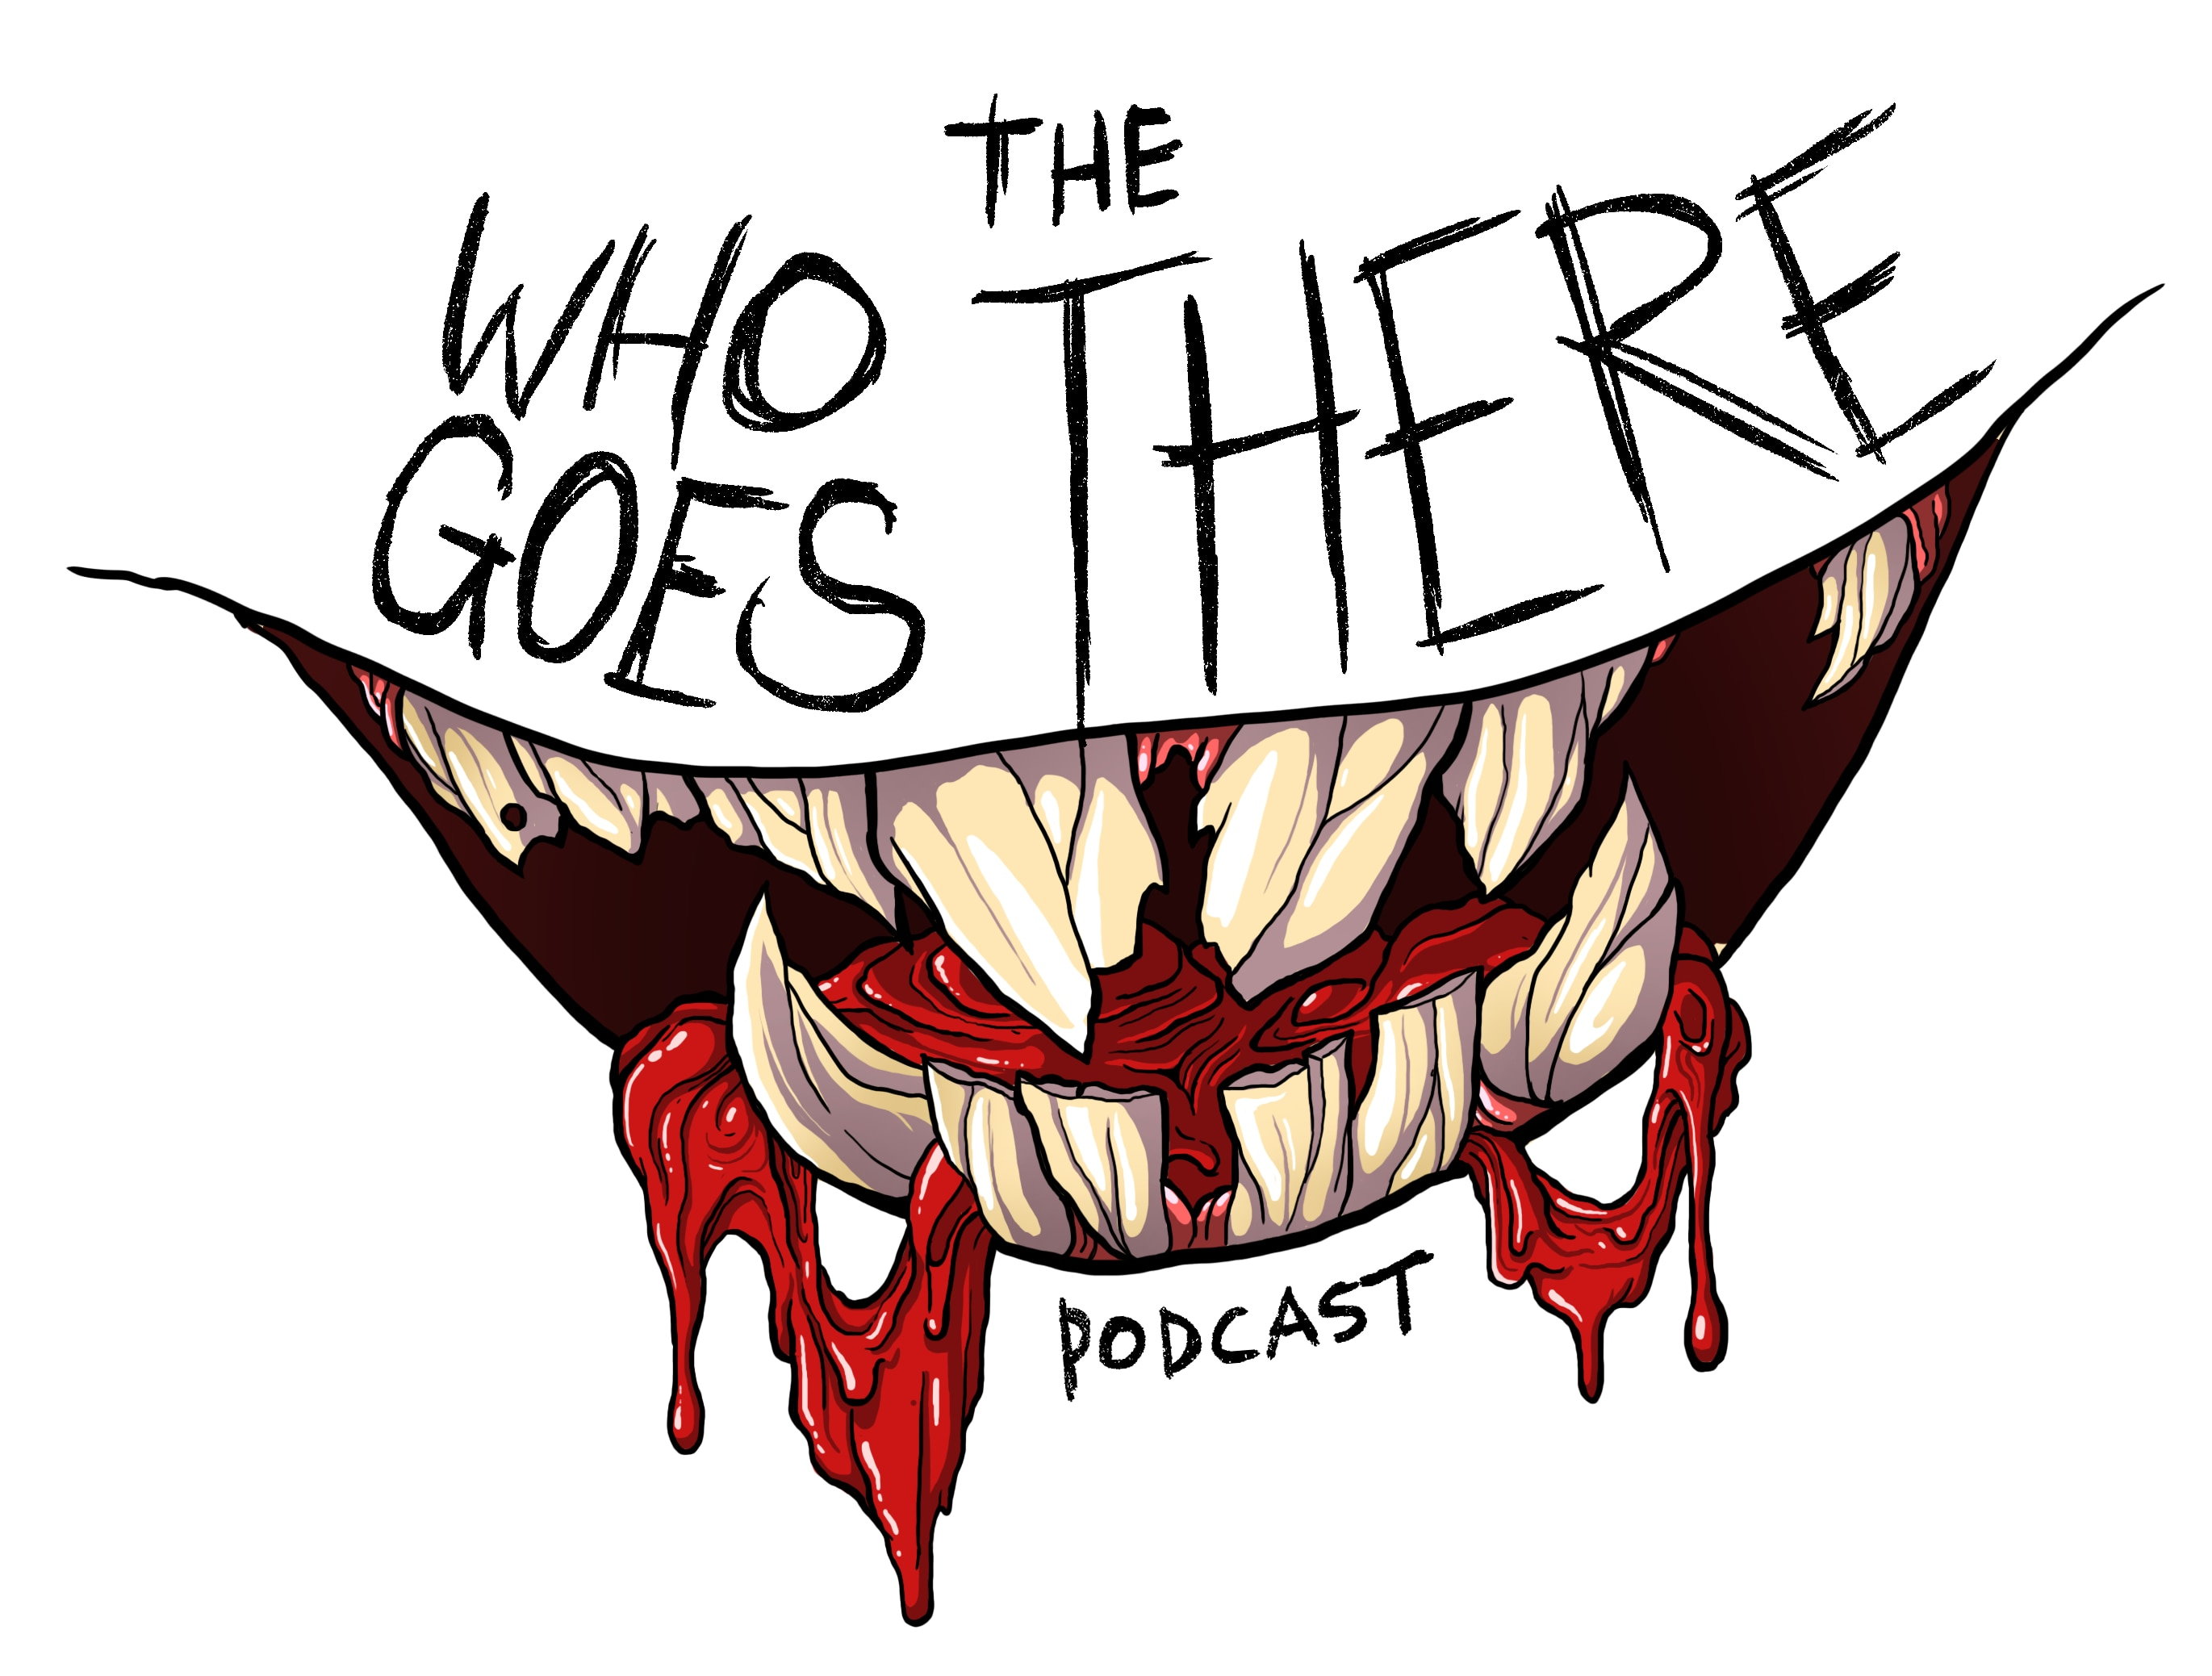 TeethFinal - Who Goes There Podcast: Ep 133 - Se7en